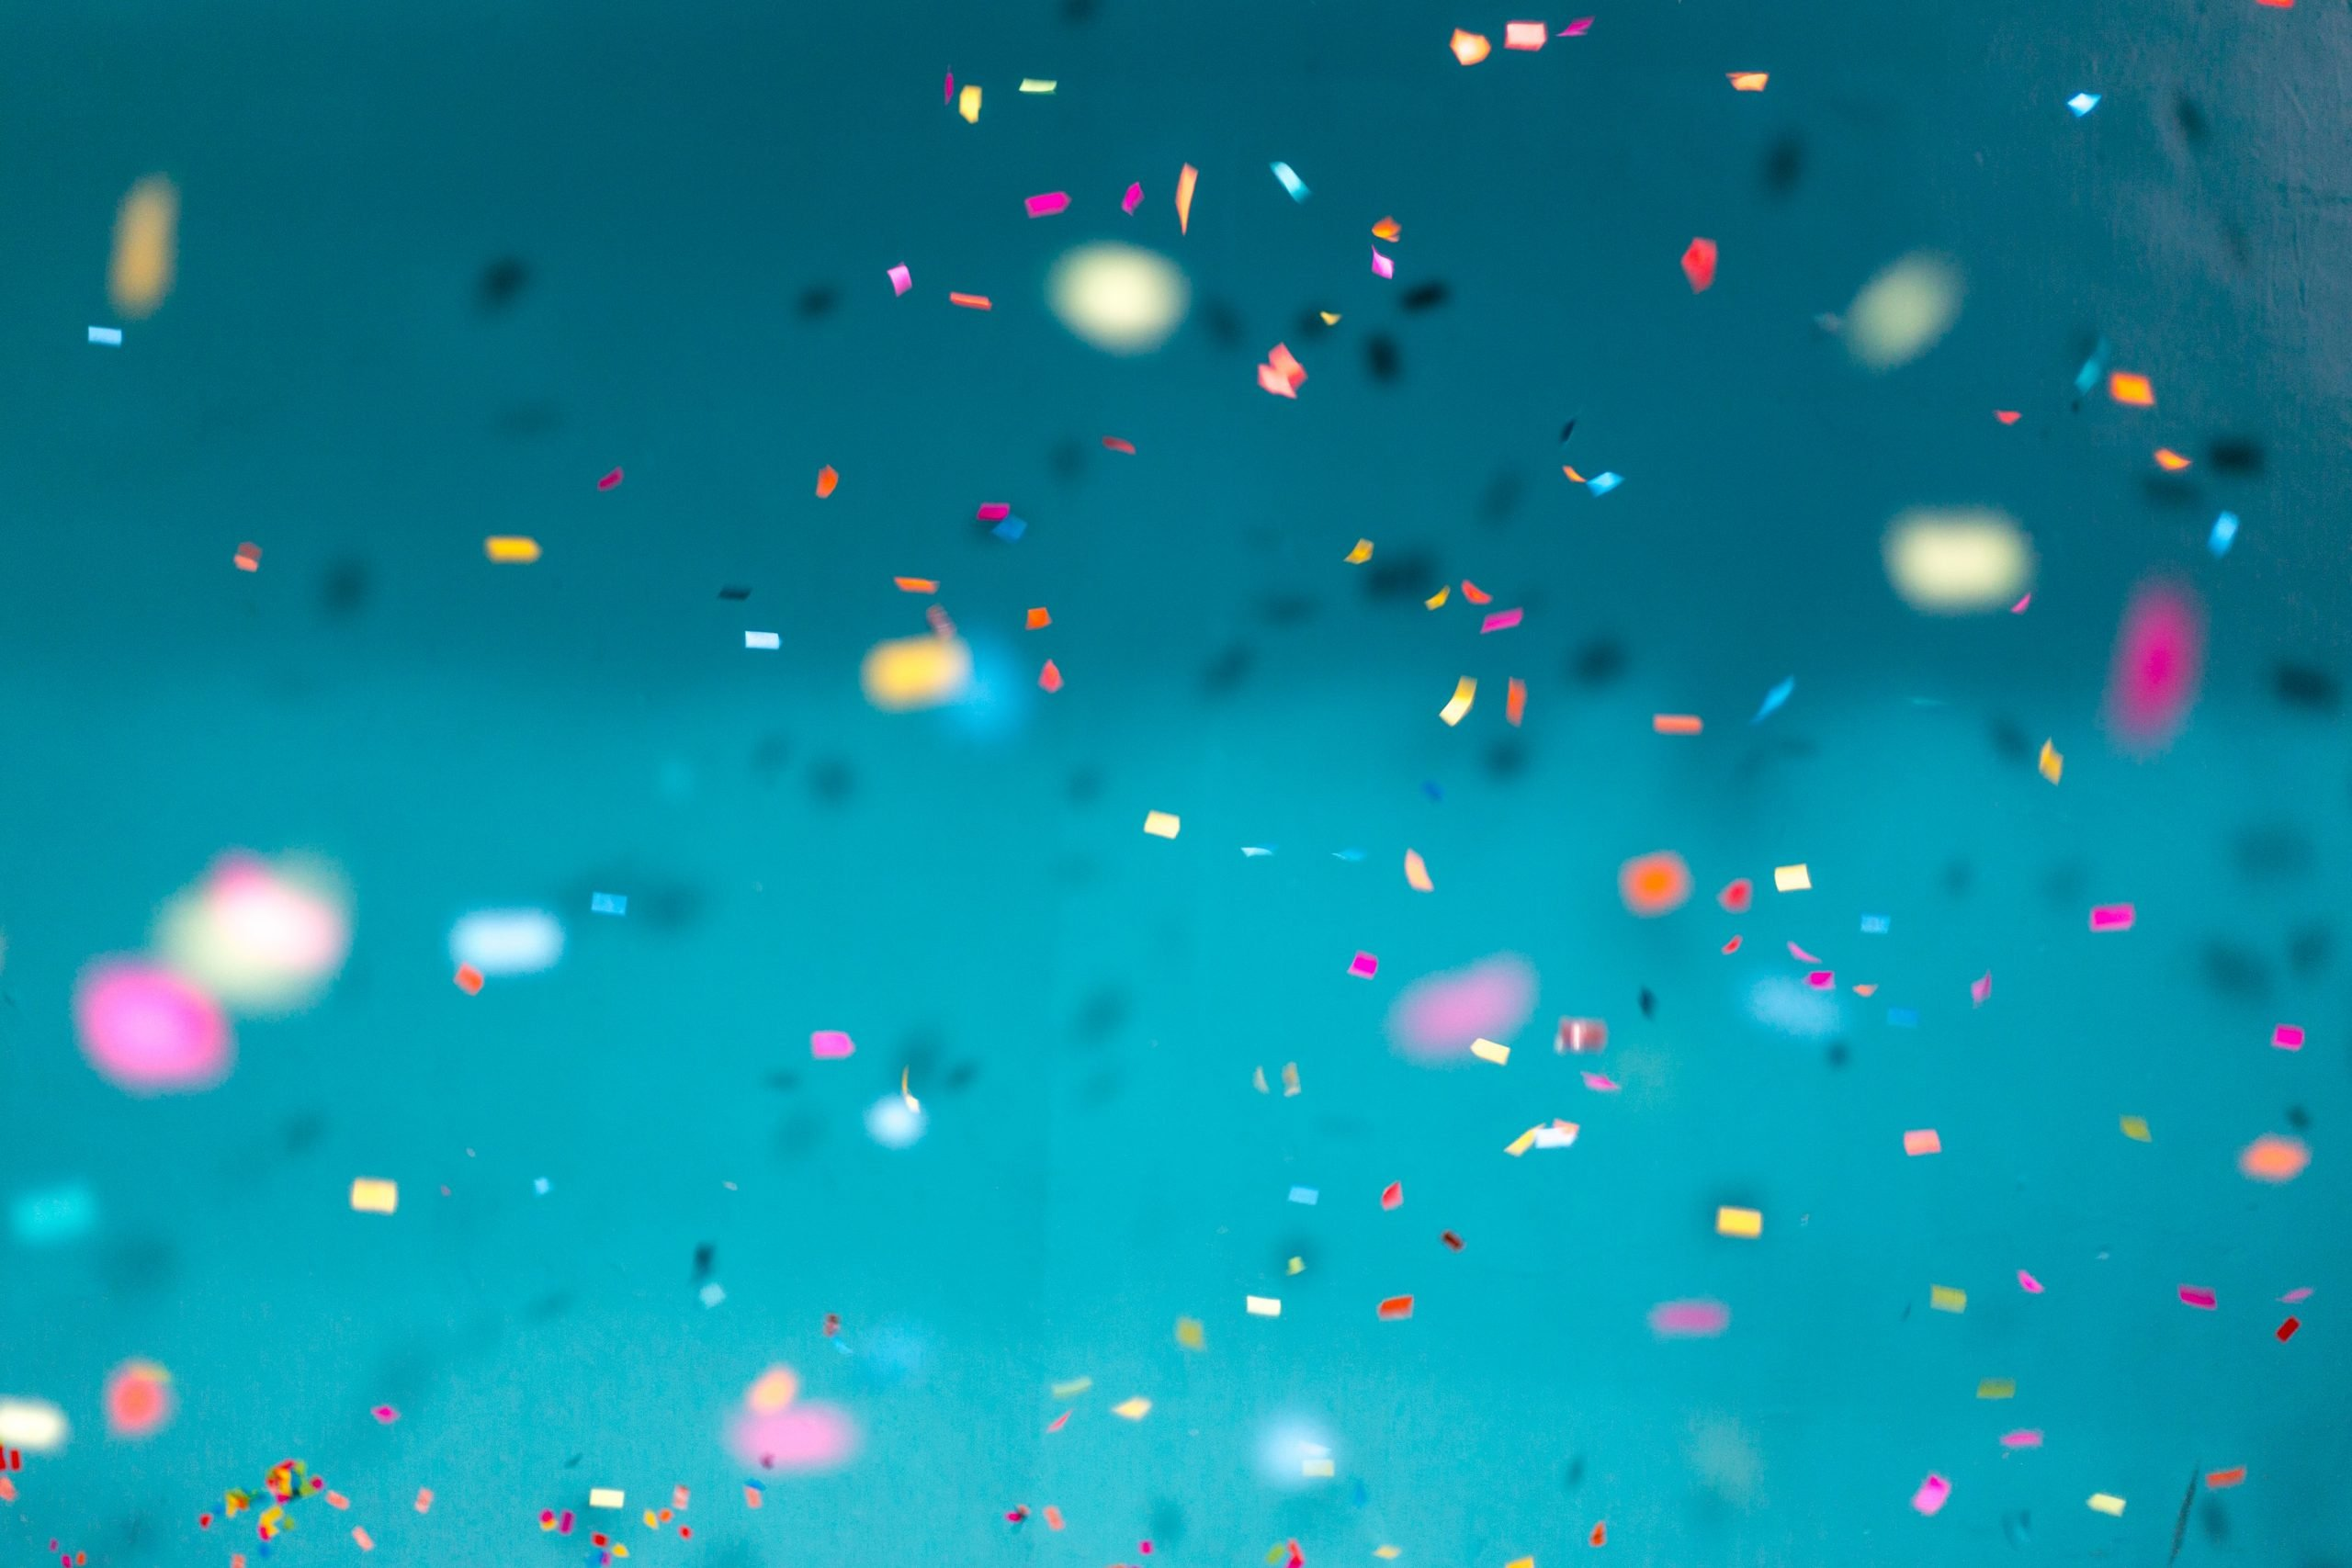 Falling confetti on a blue background